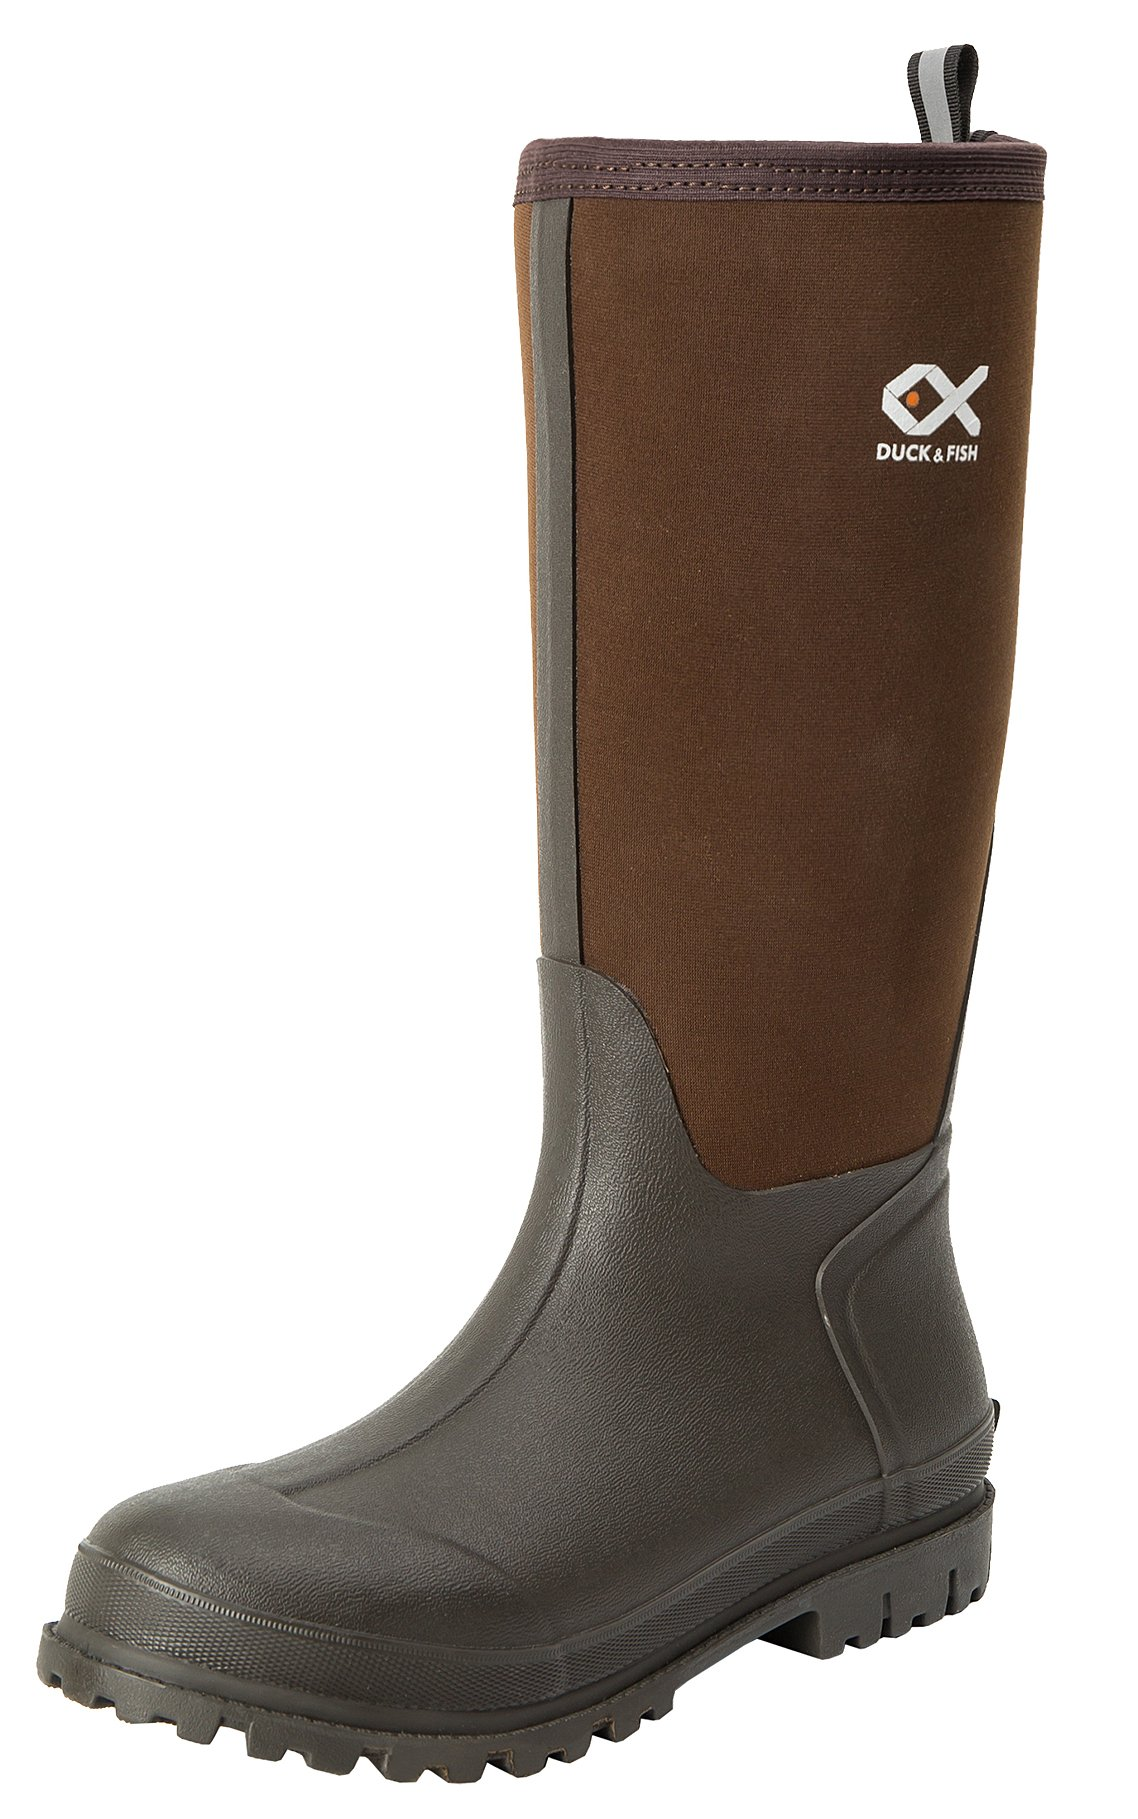 Duck and Fish 16'' Fishing Hunting Neoprene Rubber Molded Outsole Knee Boot (US 7, Brown)